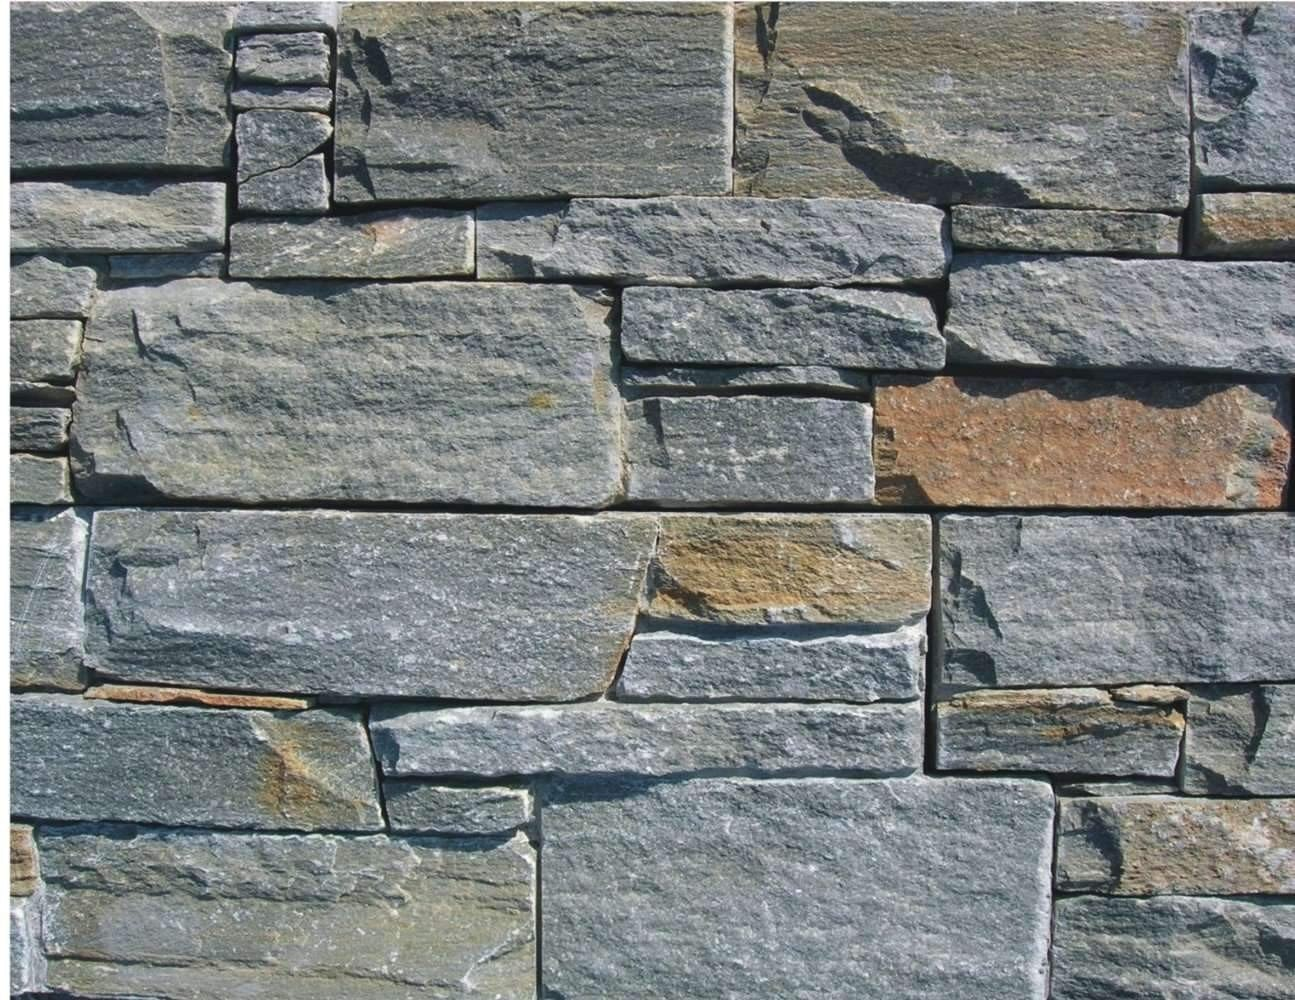 Reef - Rough Cut Slate cheap stone veneer clearance - Discount Stones wholesale stone veneer, cheap brick veneer, cultured stone for sale